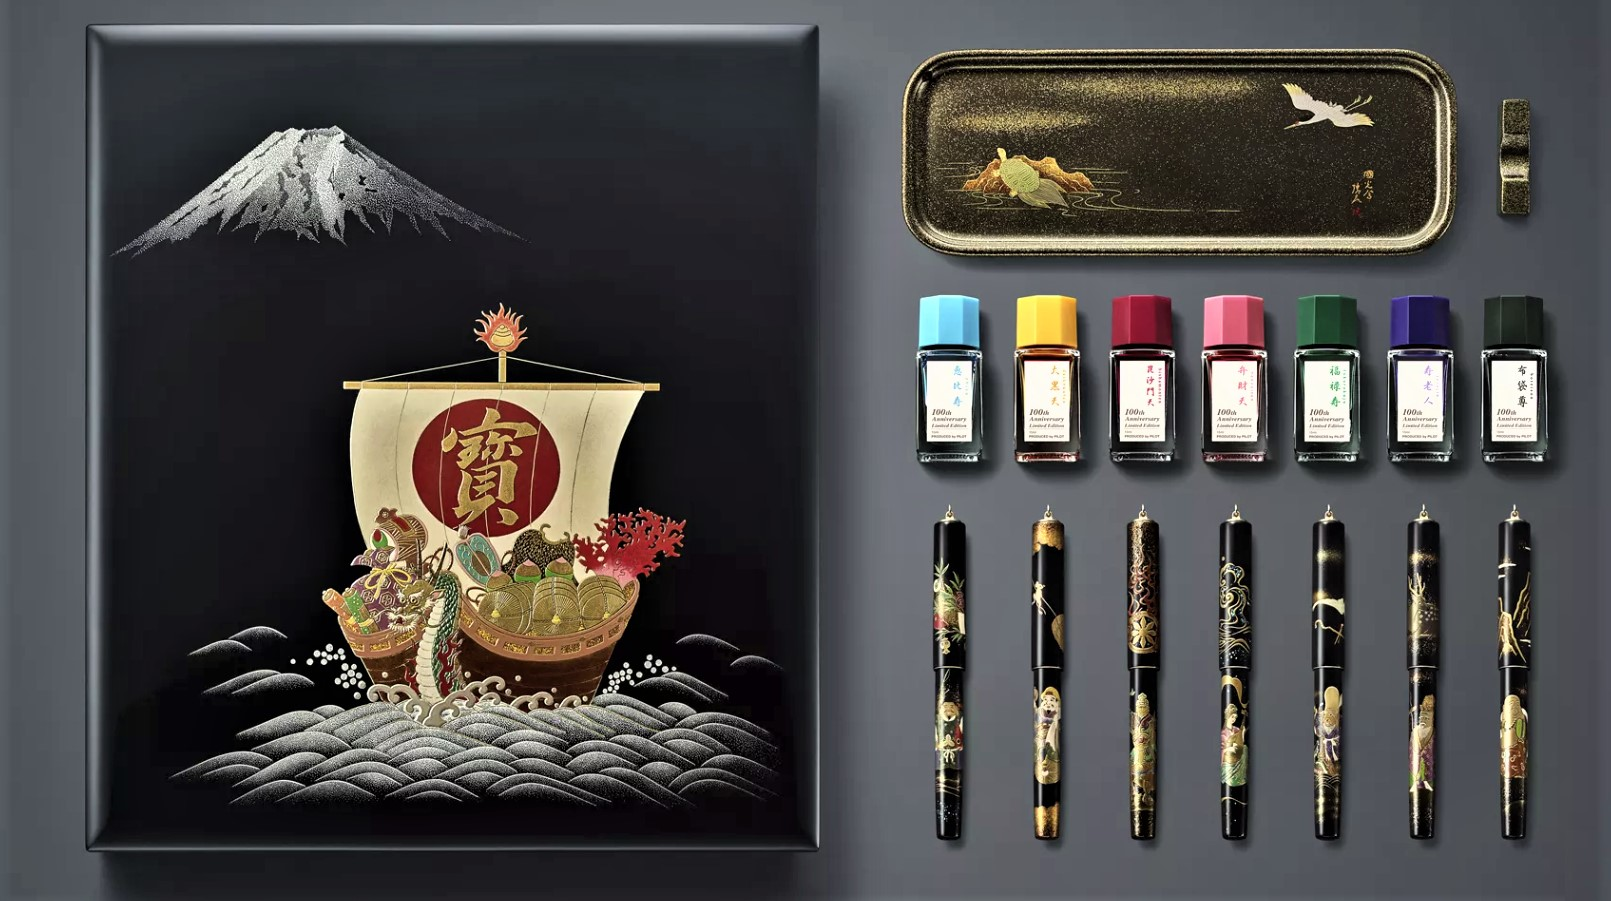 Pilot's 100th Anniversary Limited Edition Releases!